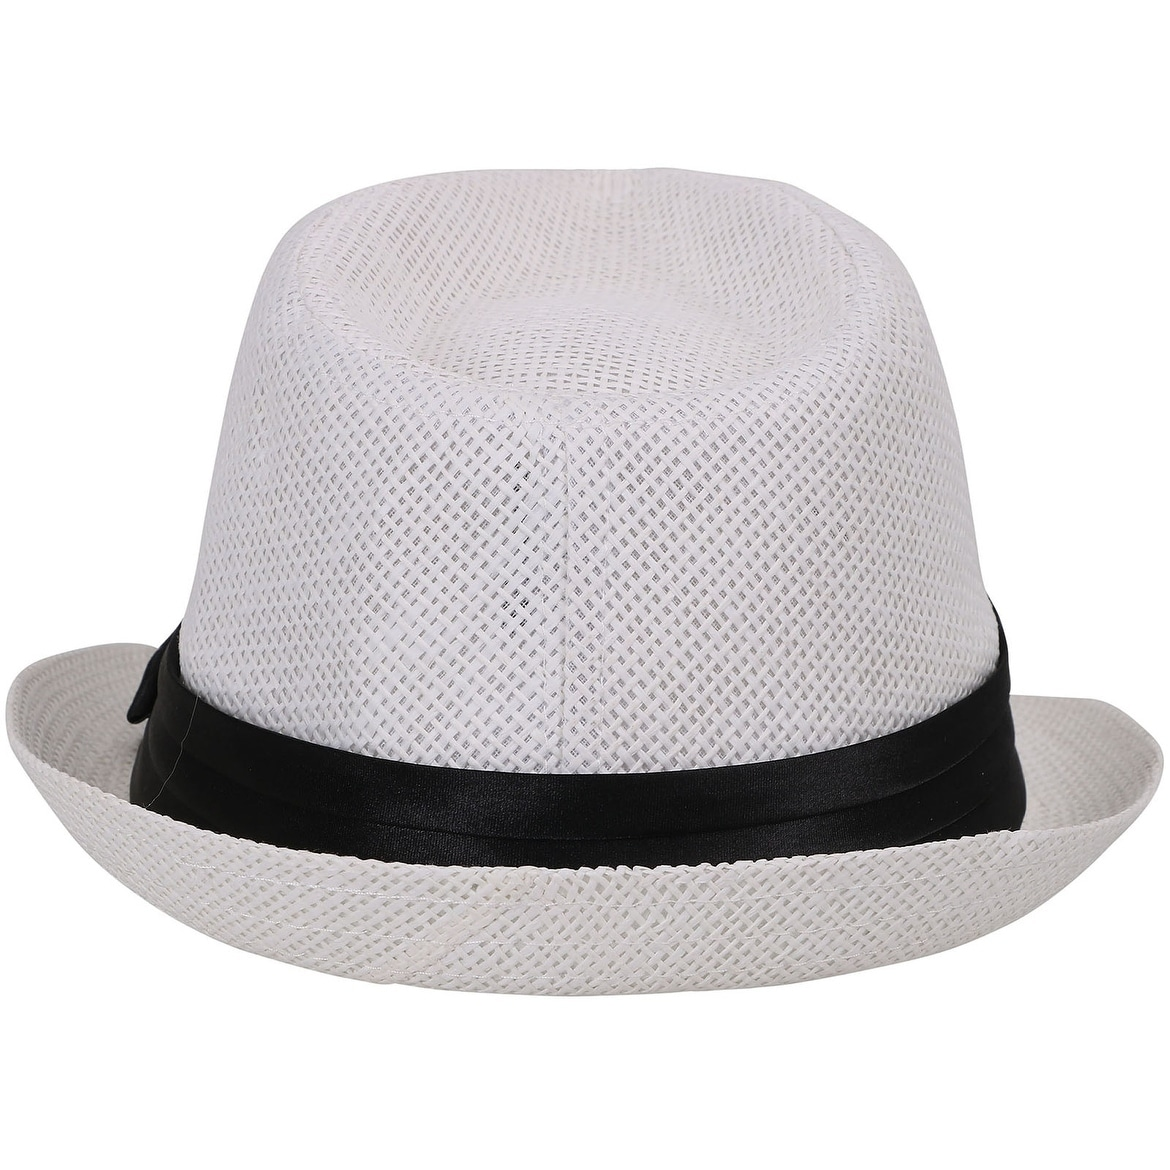 43bb8b2f Shop Simplicity Women Men Summer Double Colors Straw Fedora Hat w/ Rasta  Band - On Sale - Free Shipping On Orders Over $45 - Overstock - 17779629